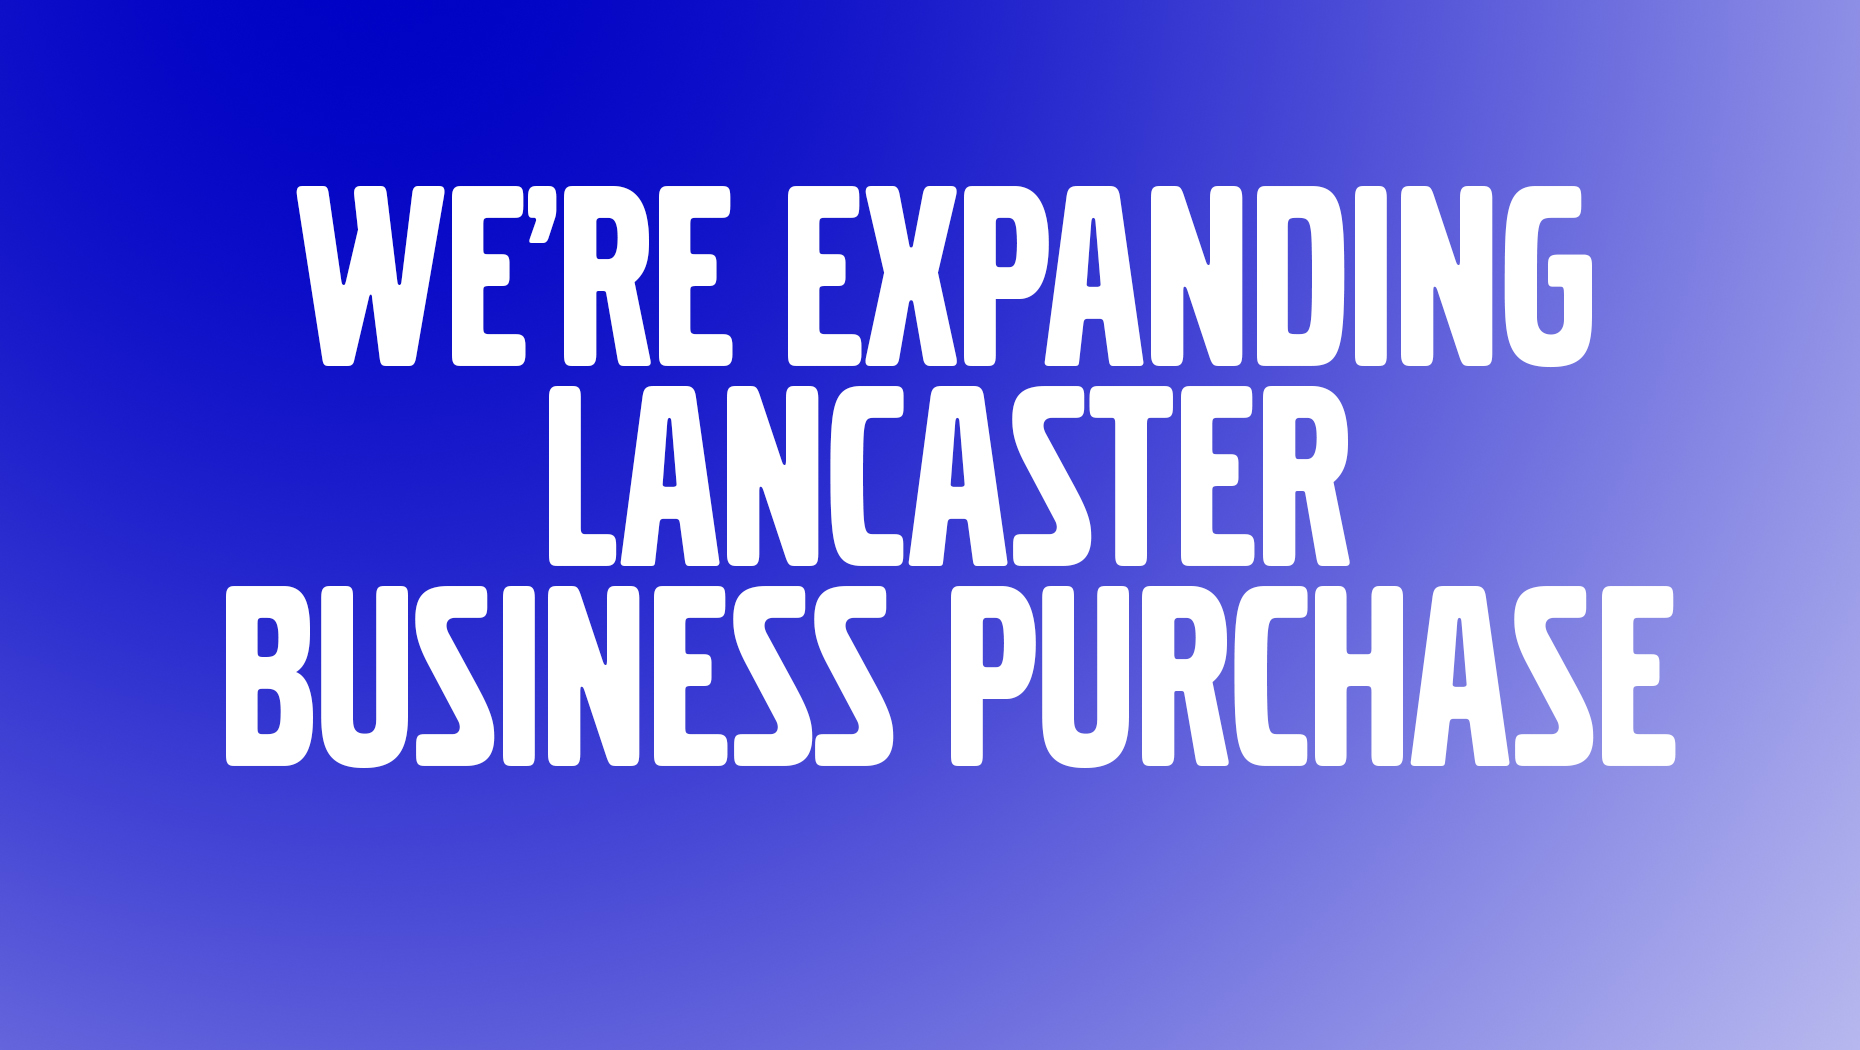 We're expanding - Lancaster business purchase